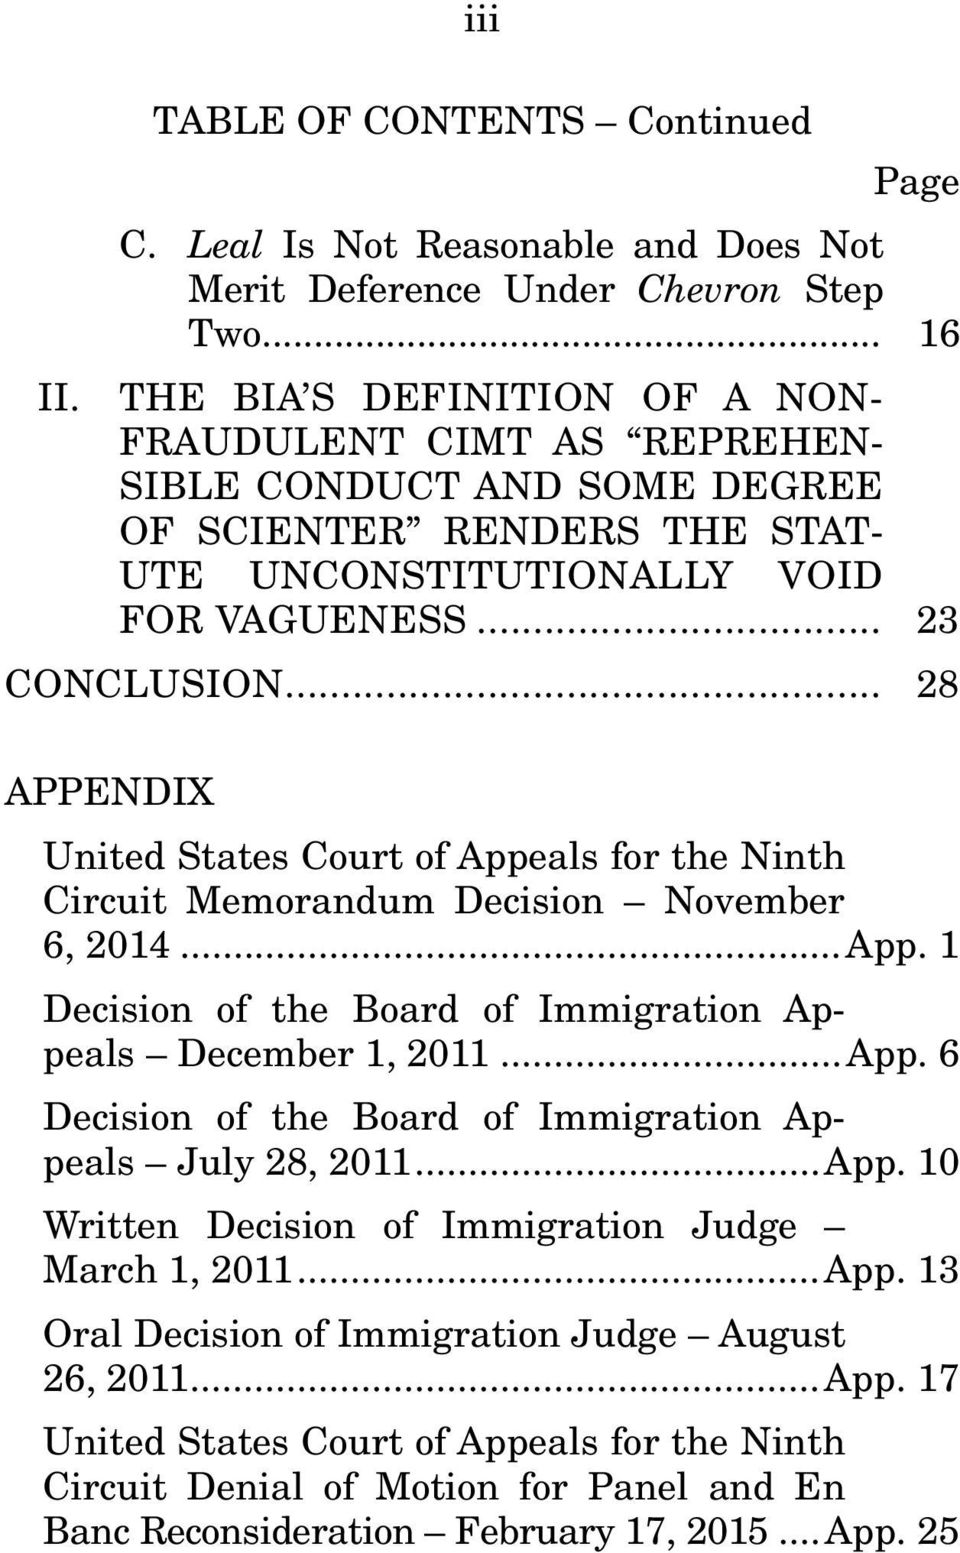 .. 28 APPENDIX United States Court of Appeals for the Ninth Circuit Memorandum Decision November 6, 2014... App. 1 Decision of the Board of Immigration Appeals December 1, 2011... App. 6 Decision of the Board of Immigration Appeals July 28, 2011.